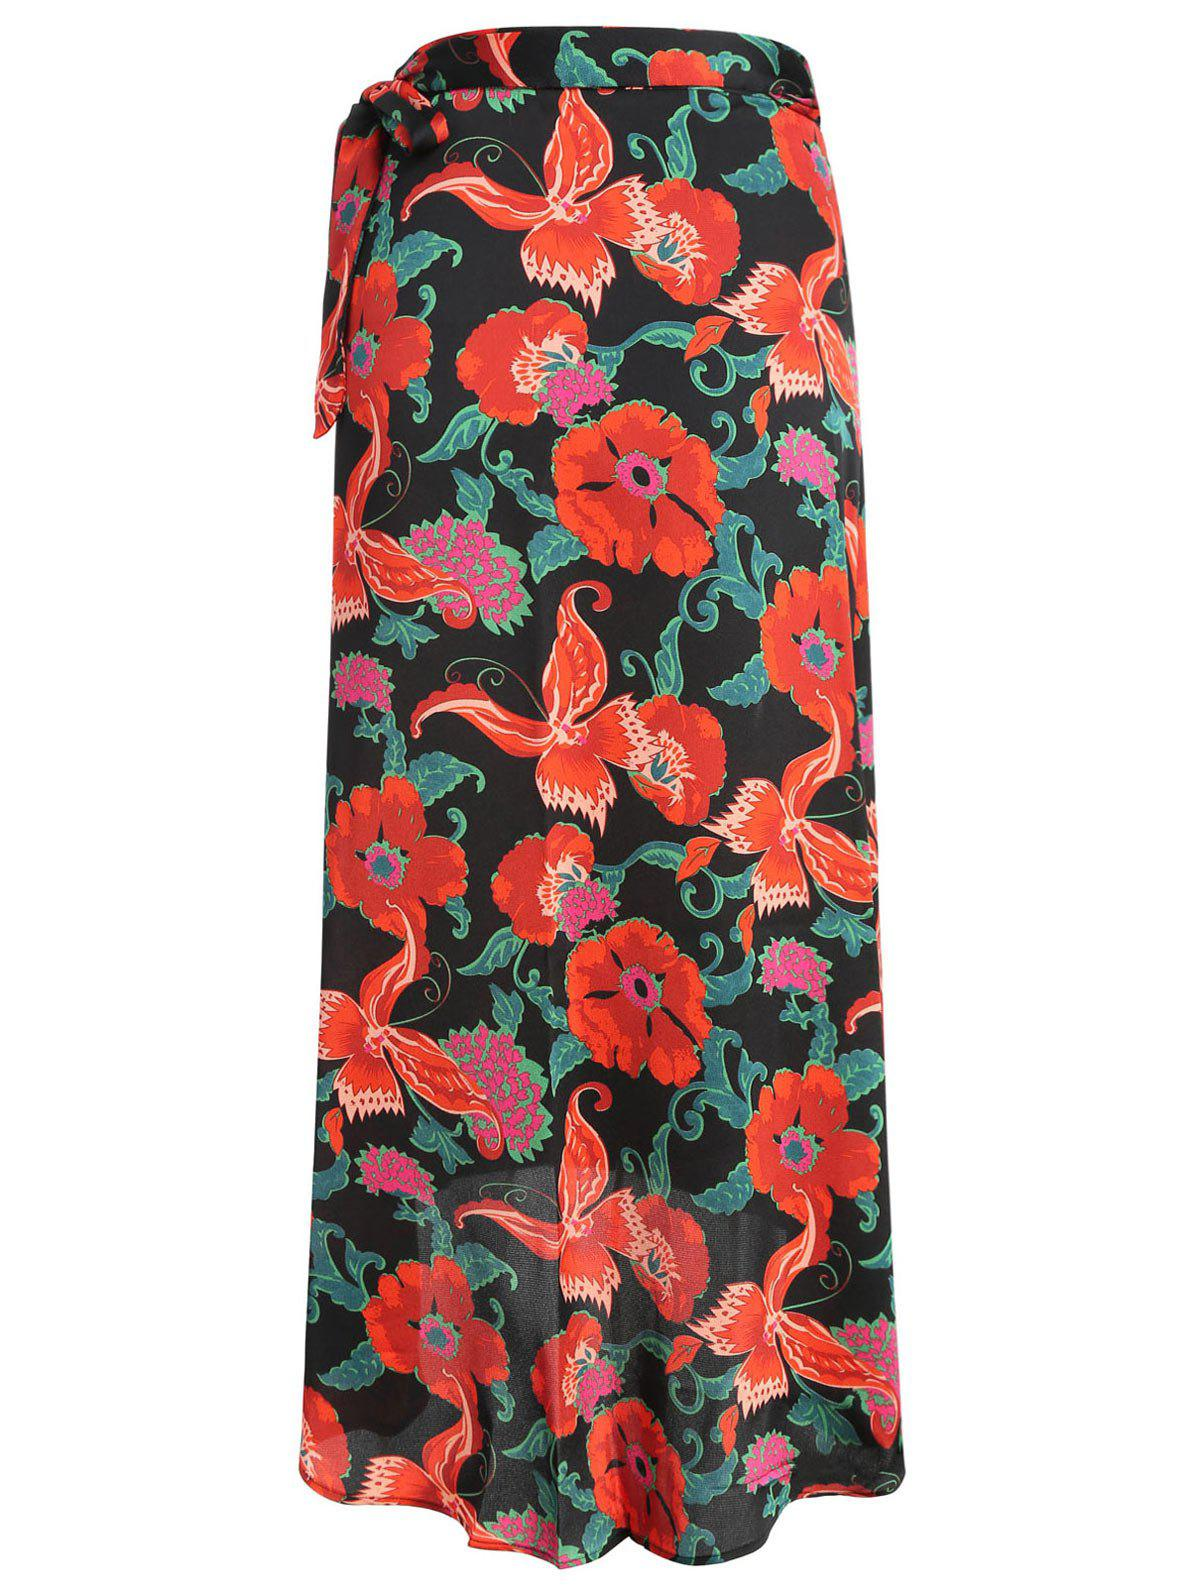 New Gamiss Women's  Vintage Floral Tie Up Waist Summer Beach Wrap Cover Up Maxi Skirt